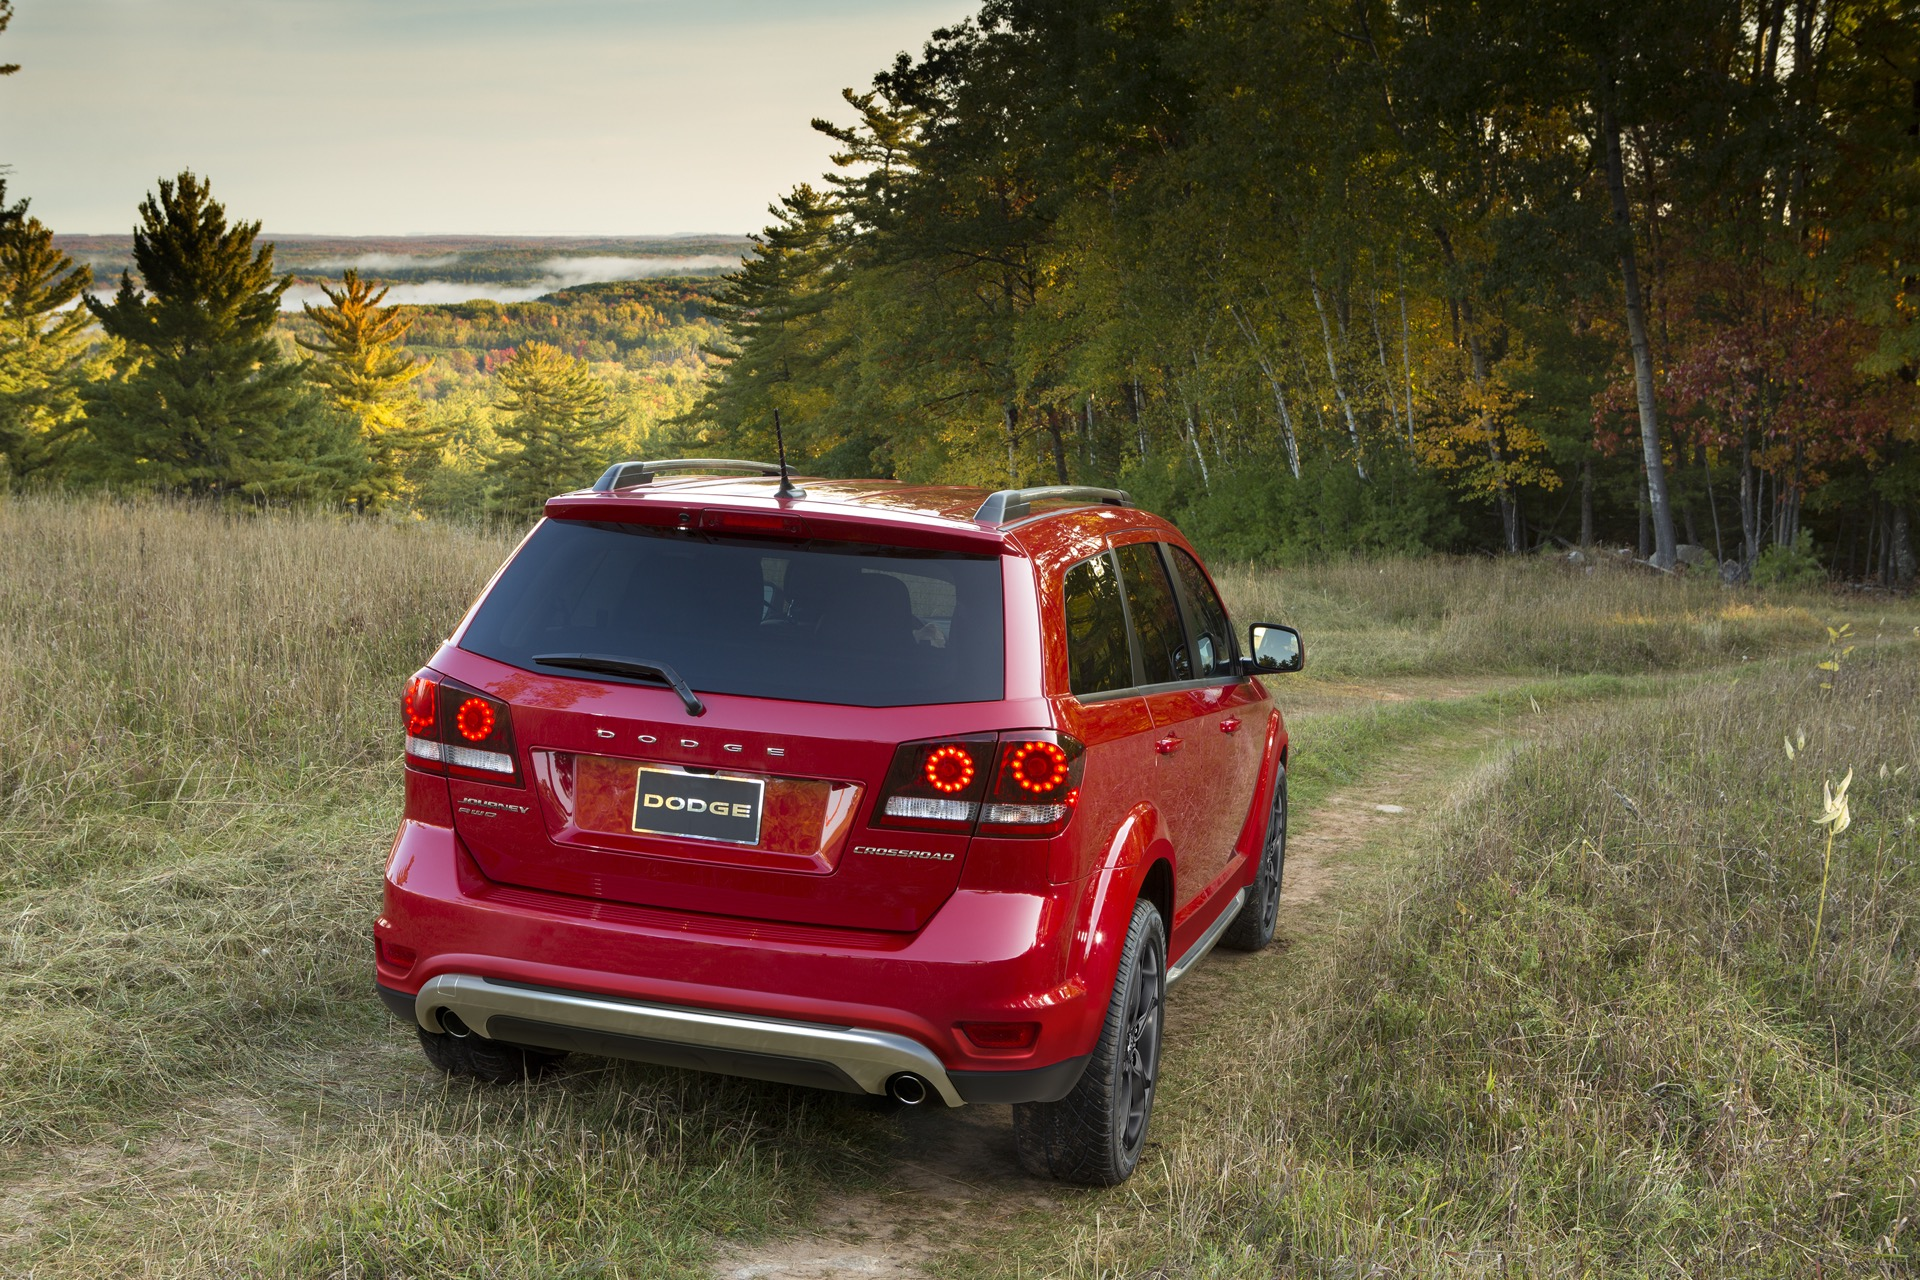 Next Dodge Journey could share RWD platform with Alfa Romeo